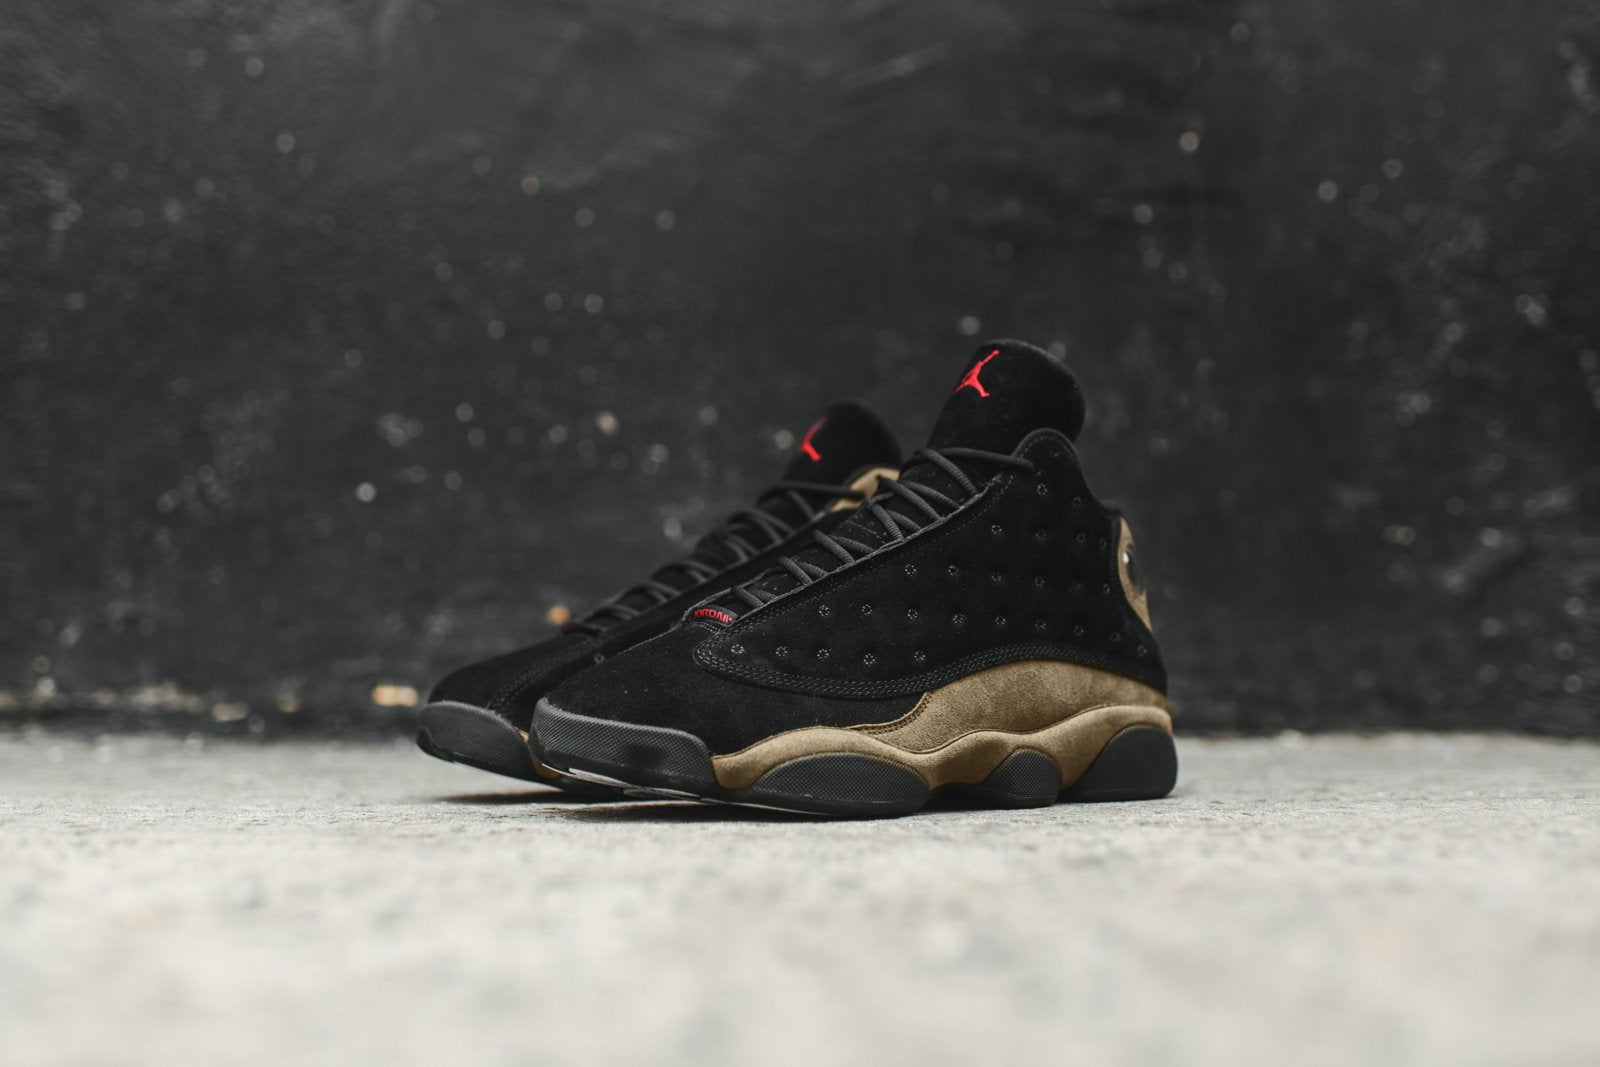 buy online d5f27 328c8 Nike Air Jordan 13 Retro - Black / Olive – Kith